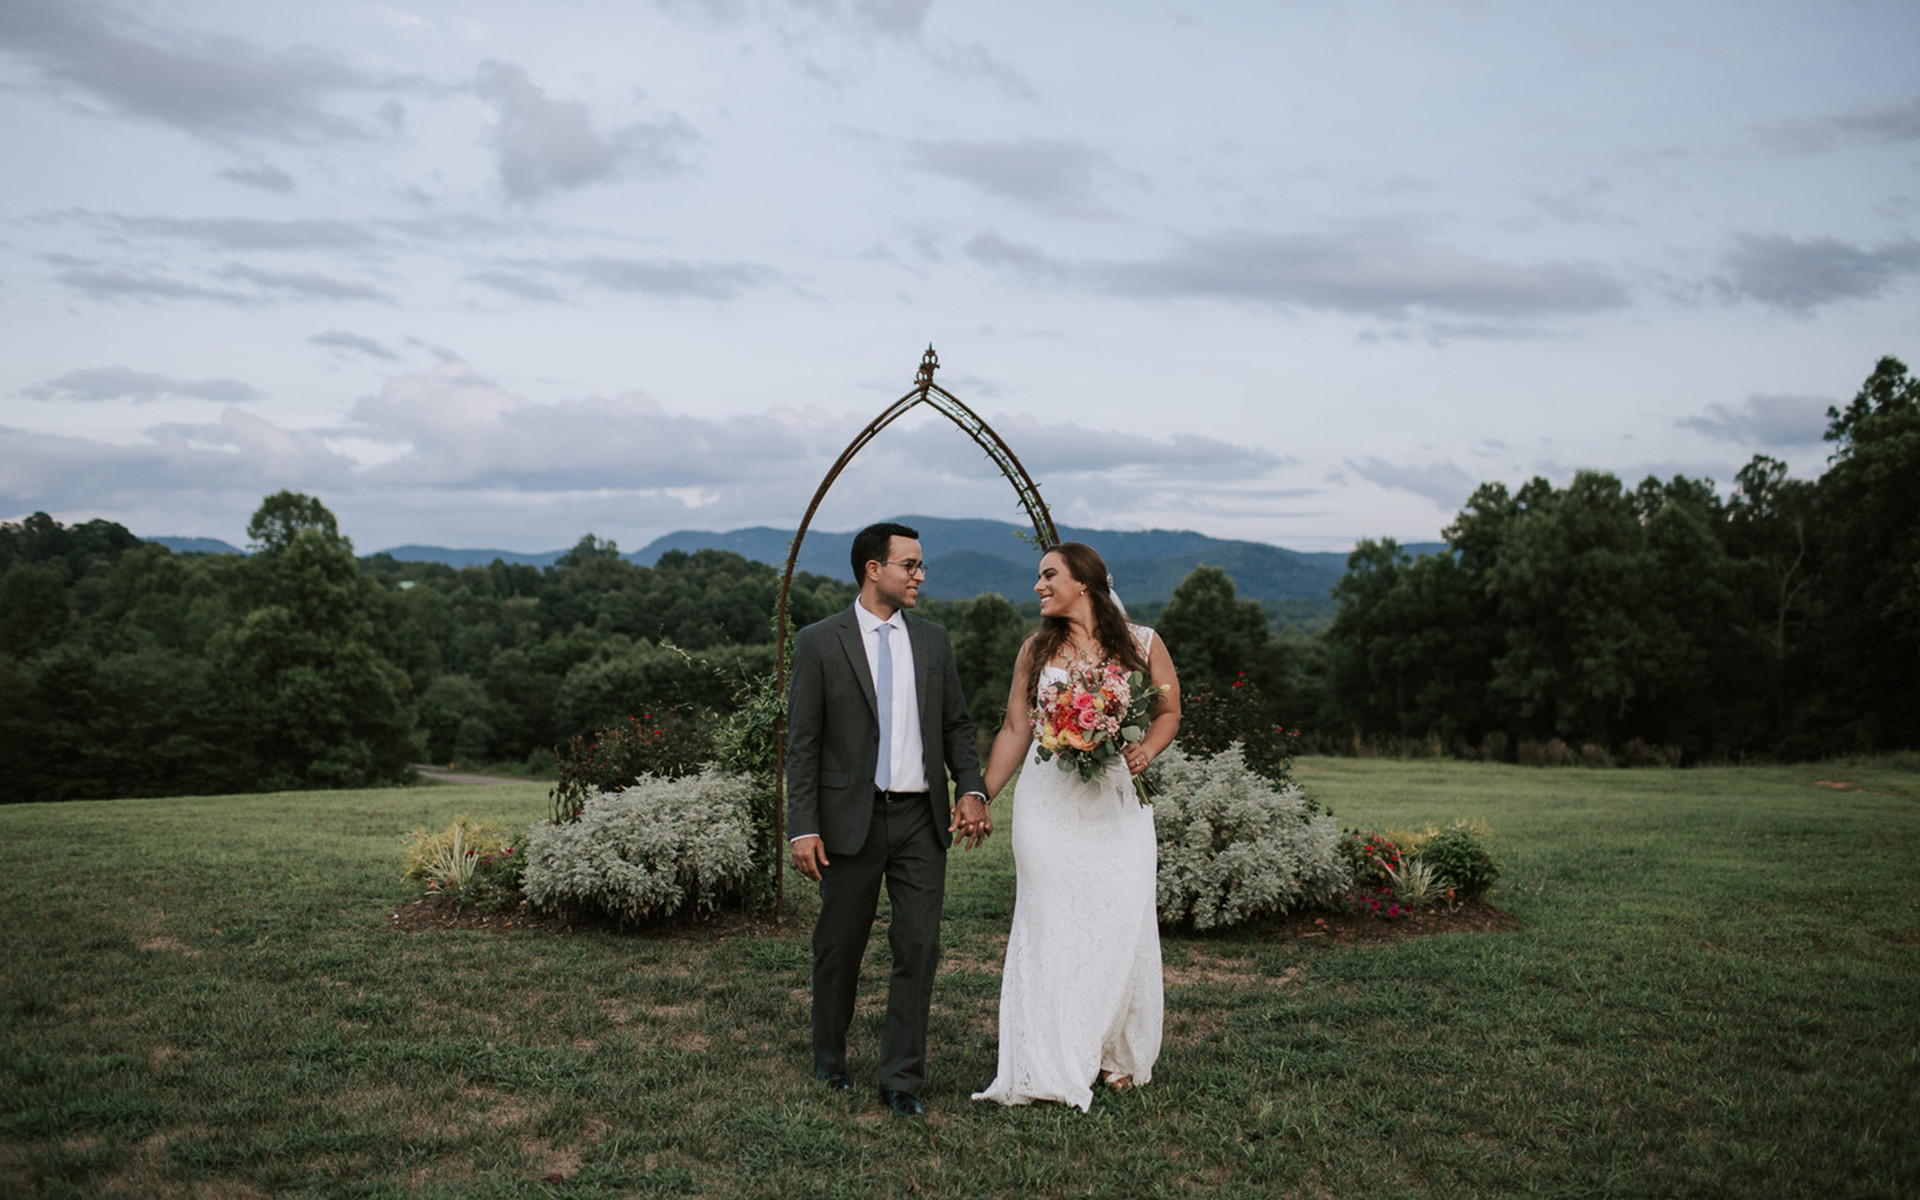 Emotional Elopement Wedding that Focused on What's Important – Love and Forever Commitment